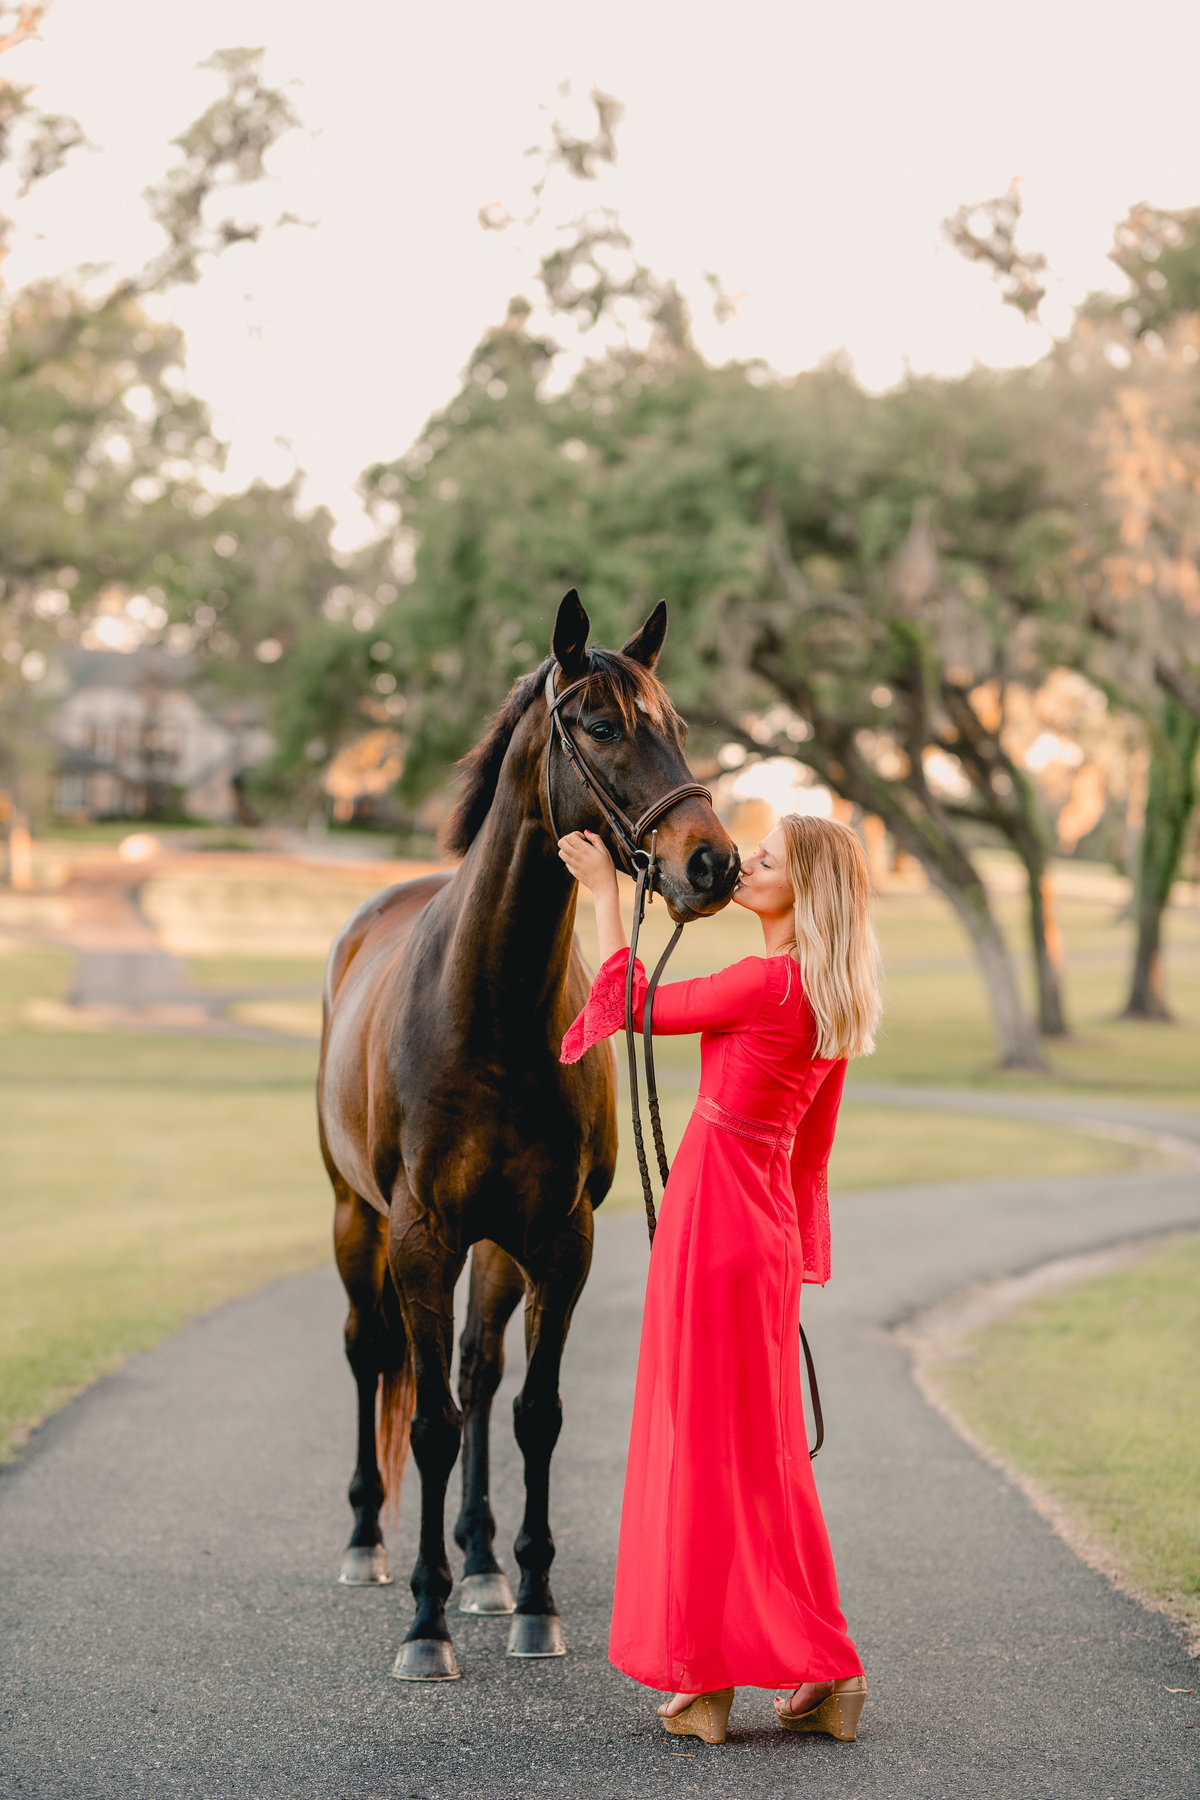 Ocala horse professional photographer specializing in horse and rider pictures.